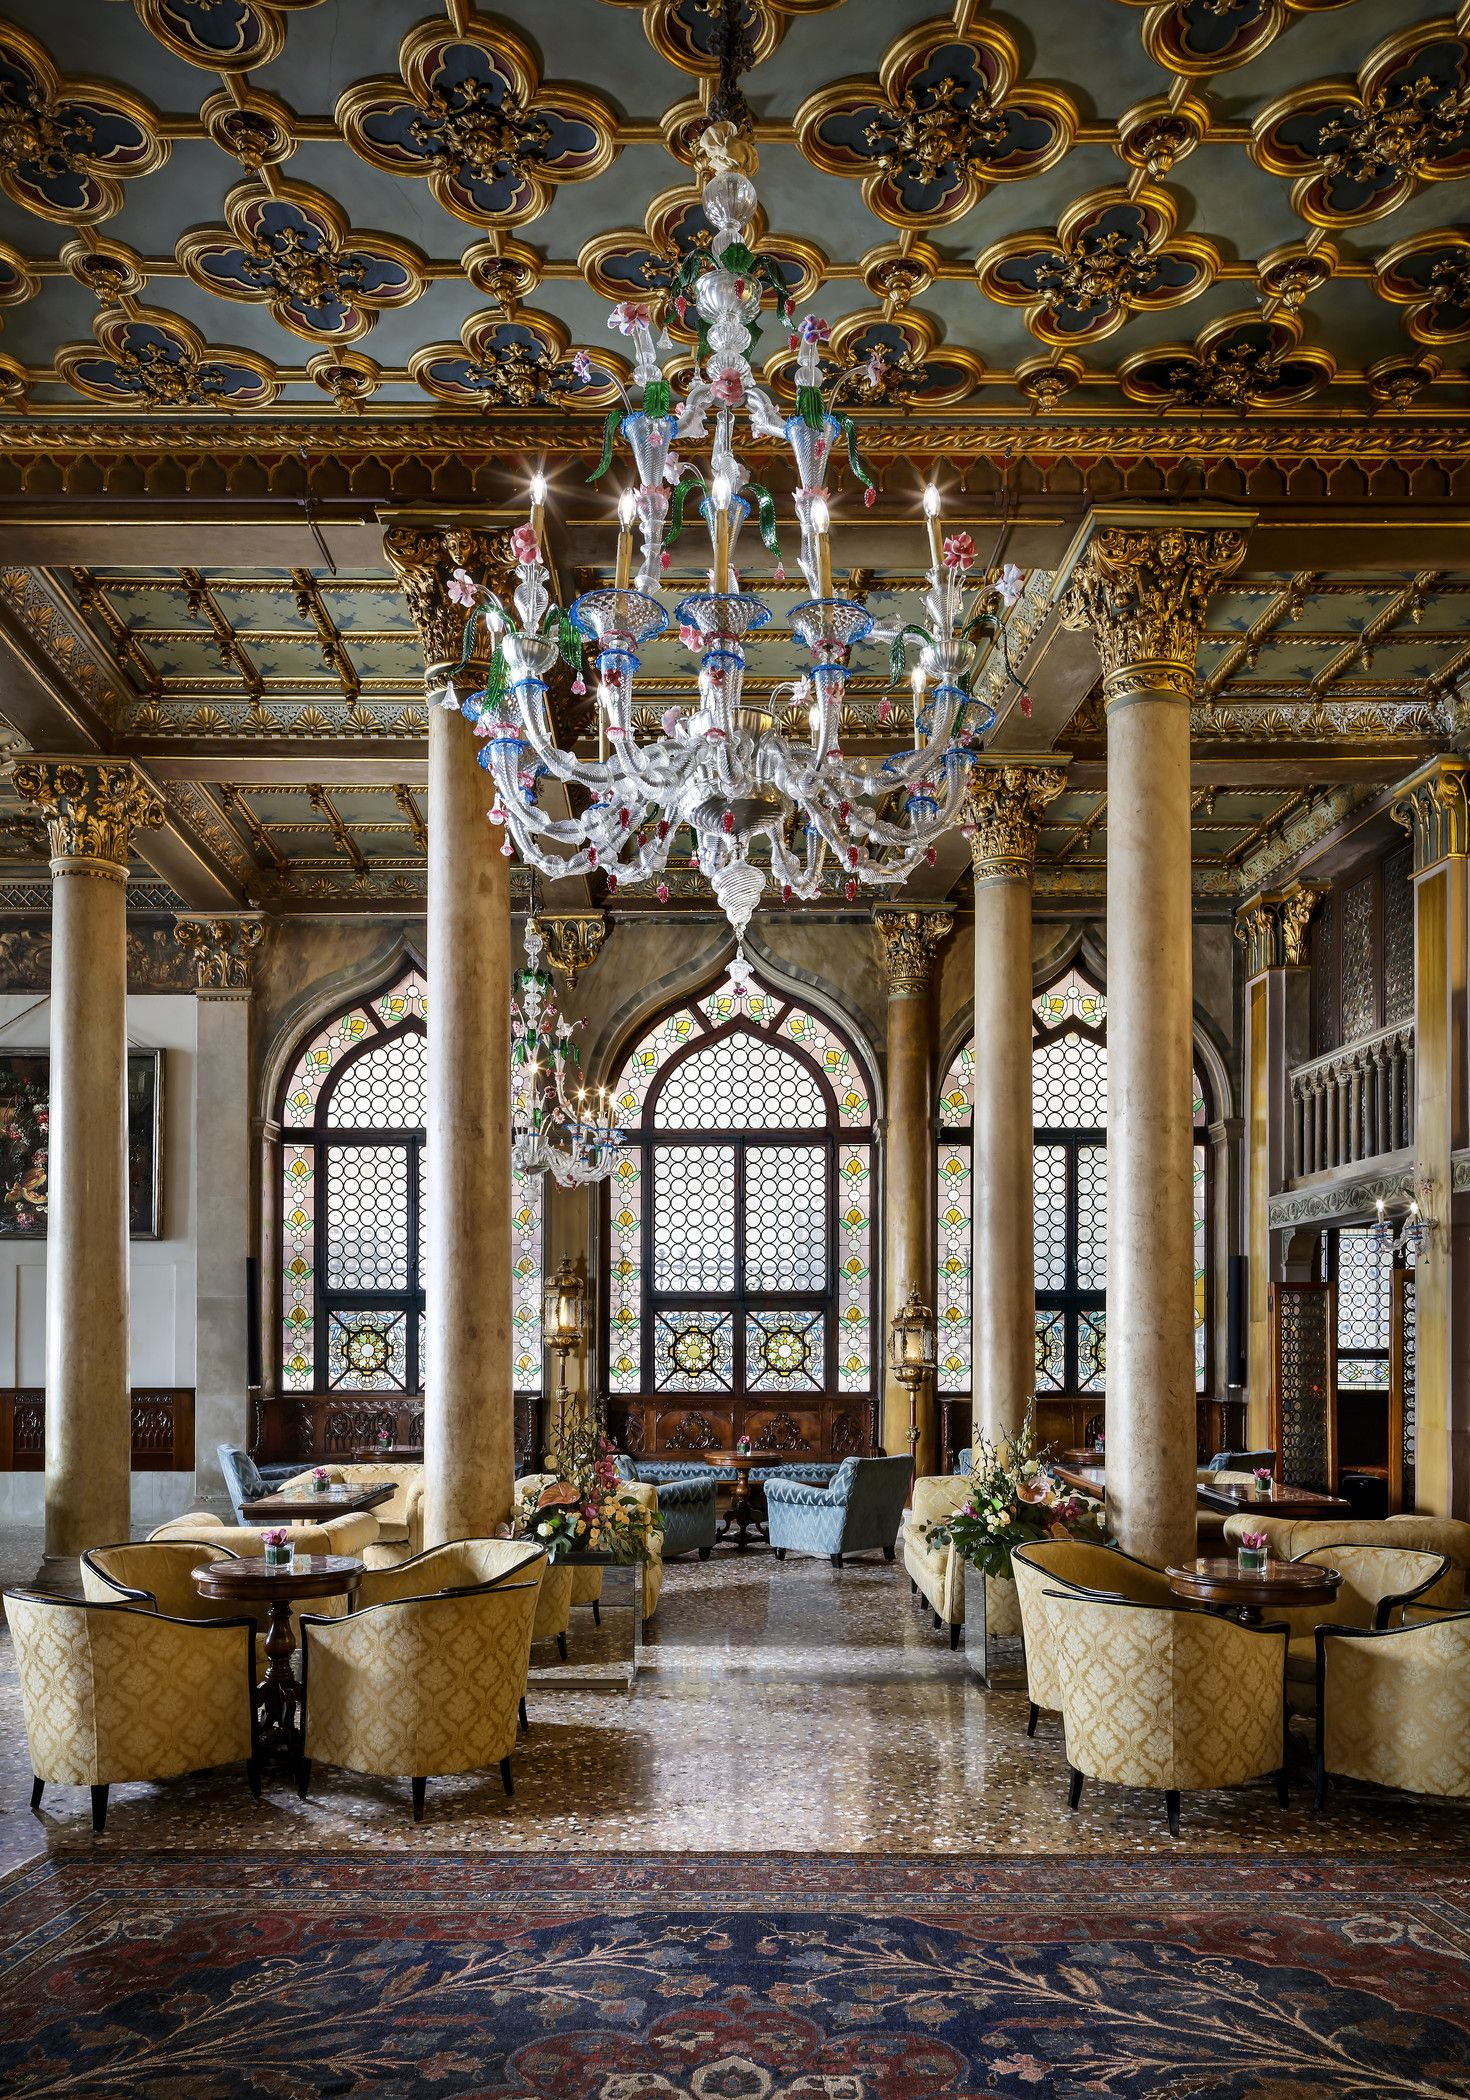 Hotel Danieli. Featured as one of Fodor's best luxury ...